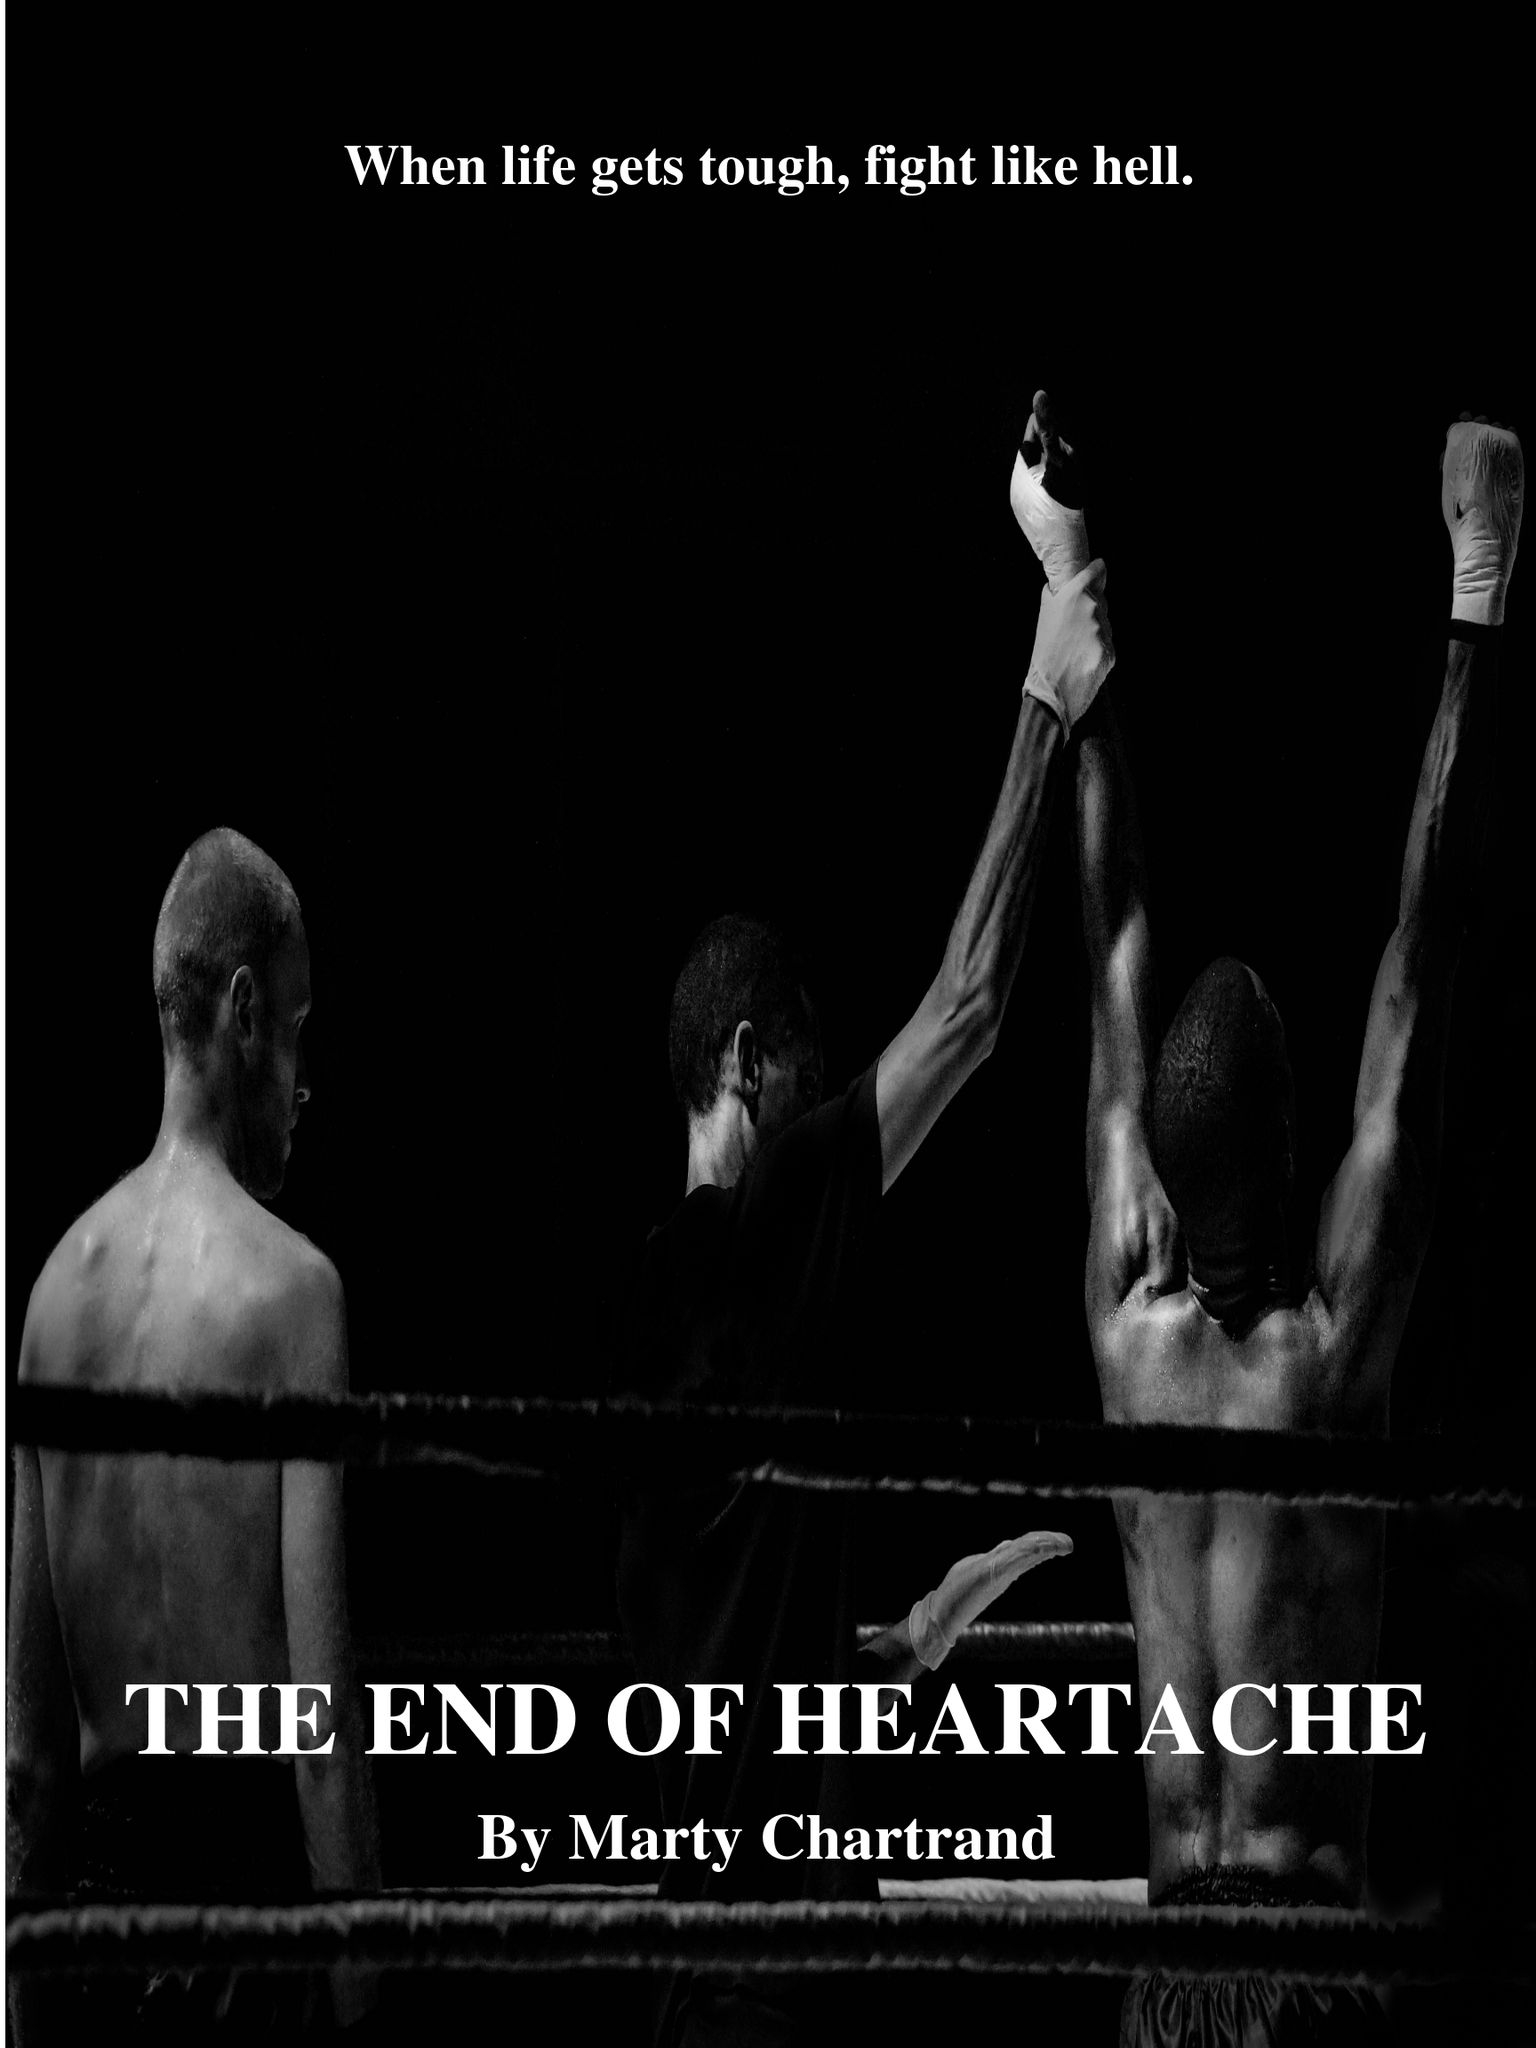 THE END OF HEARTACHE